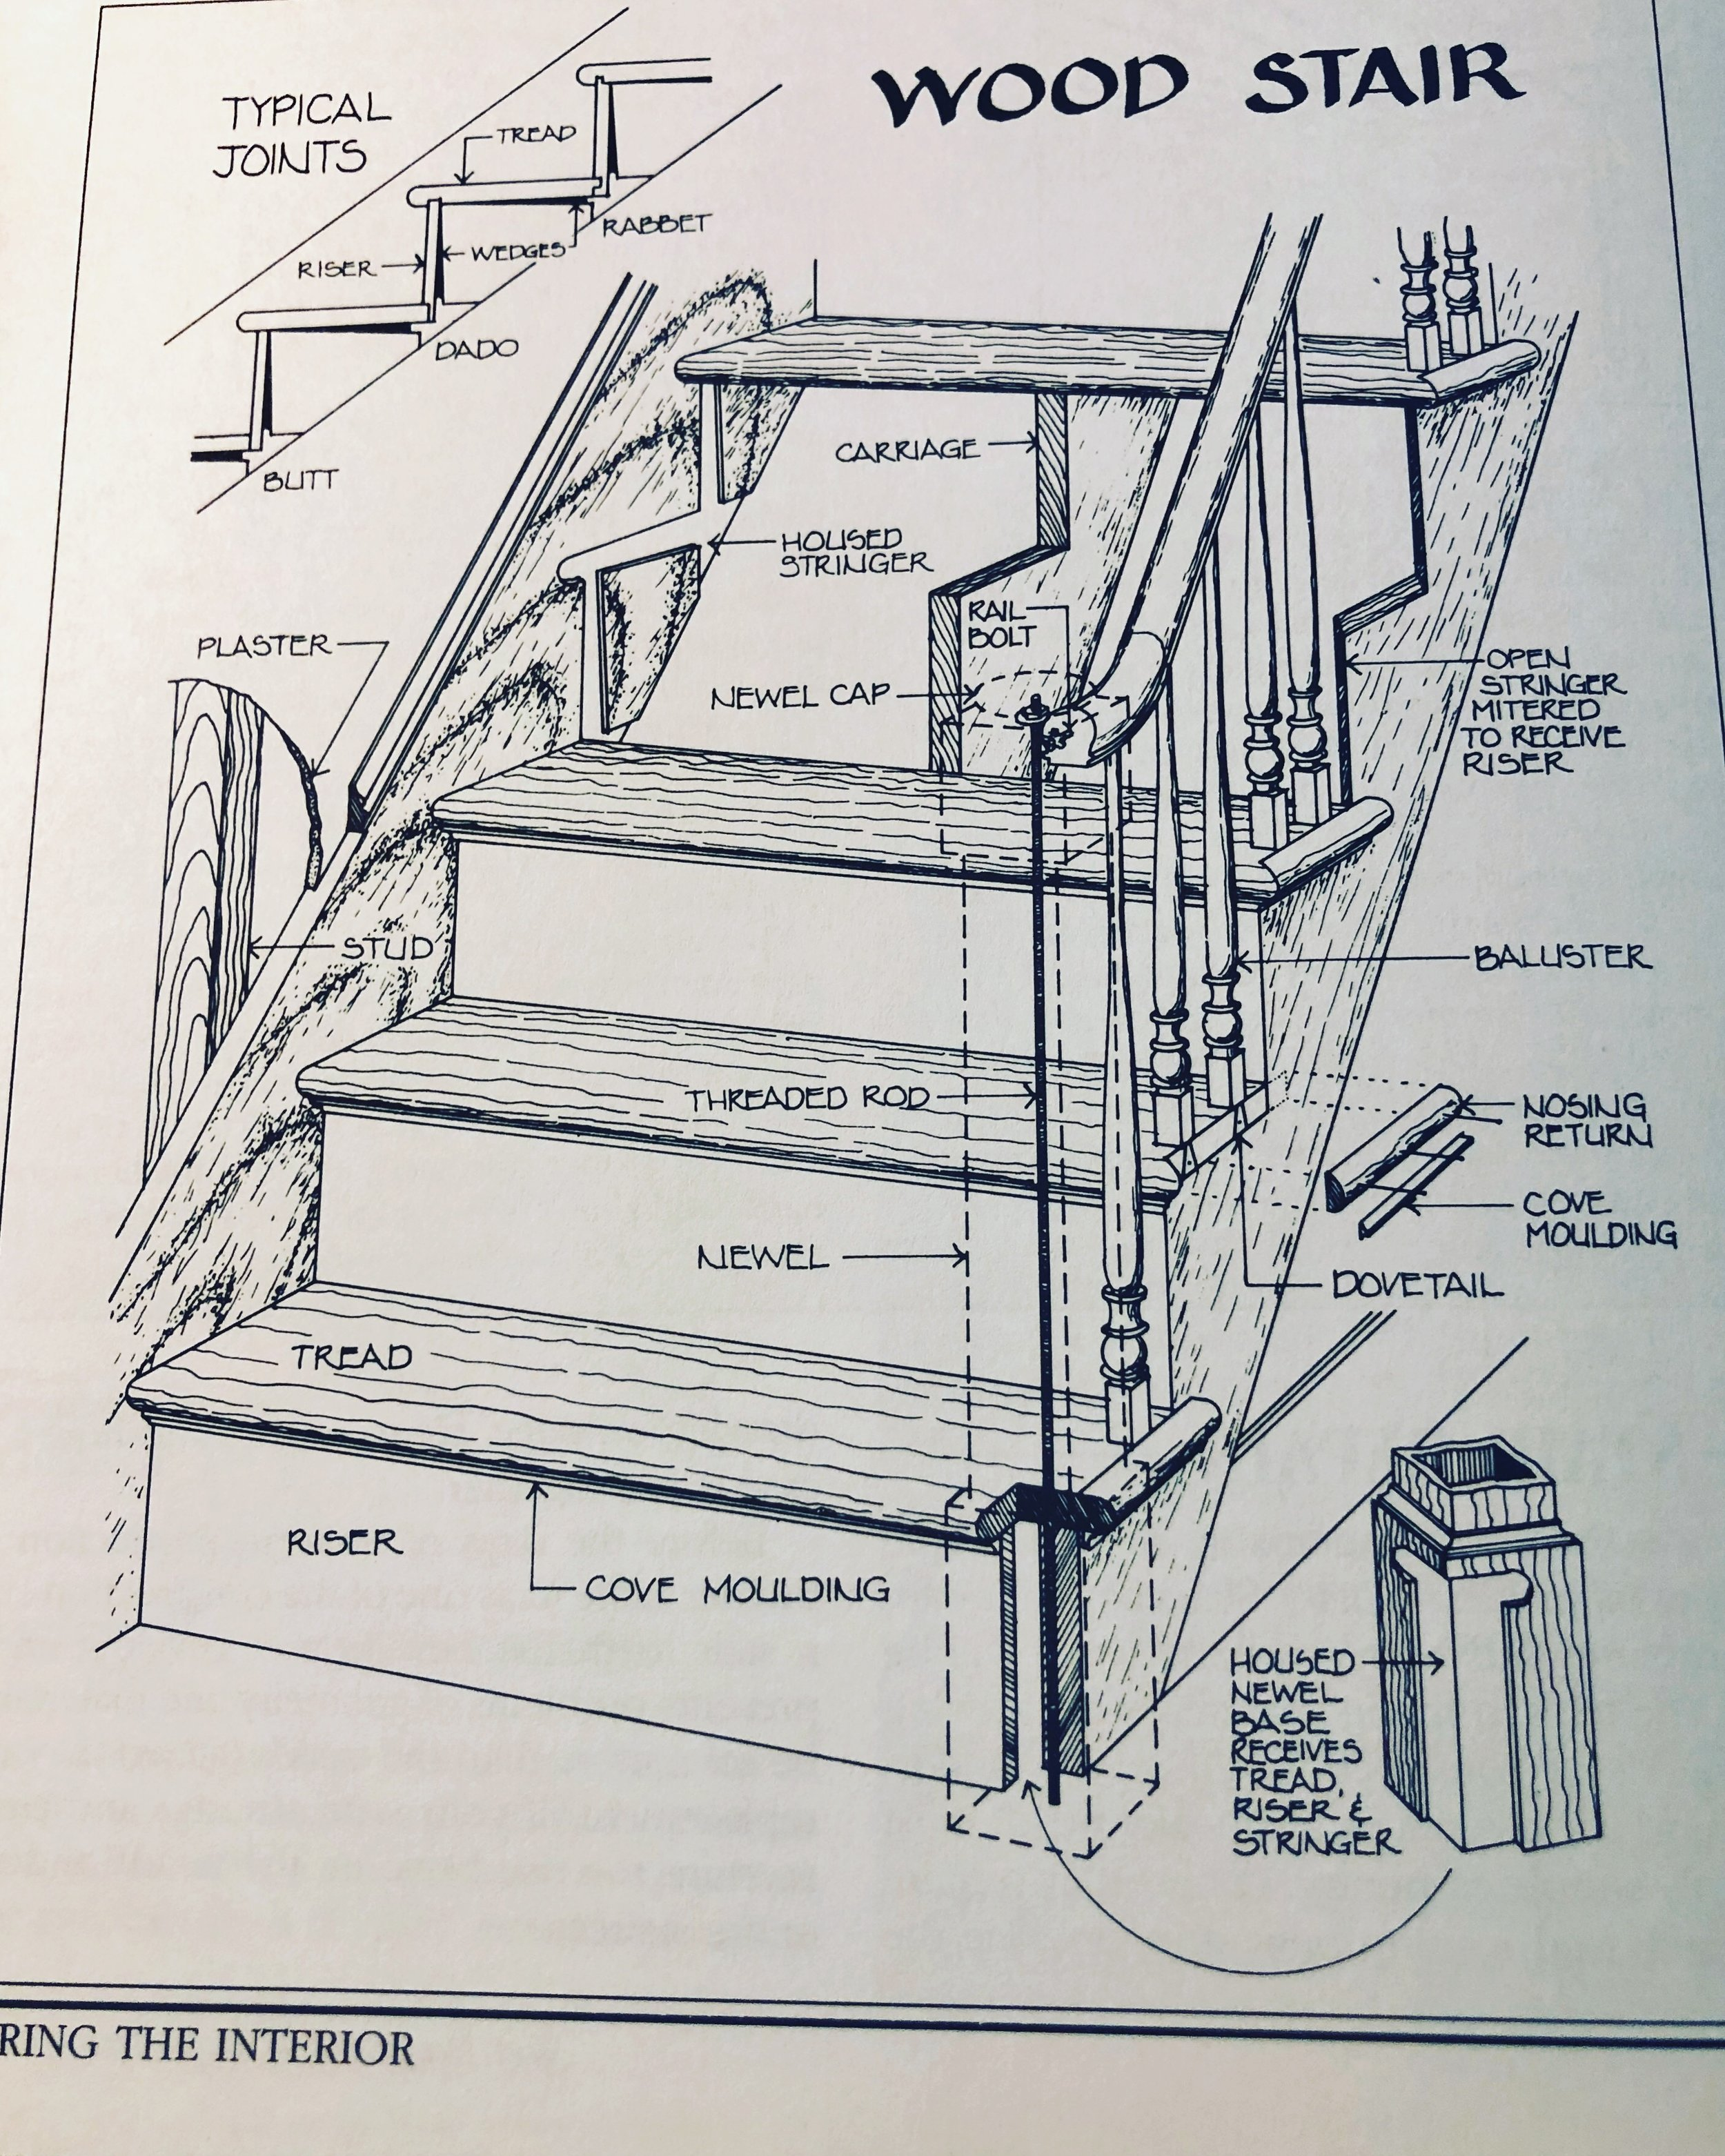 A break down of parts from a traditional stair case. Ensuring your safety while enjoying your historic stair case is one of the many specialties we focus on.